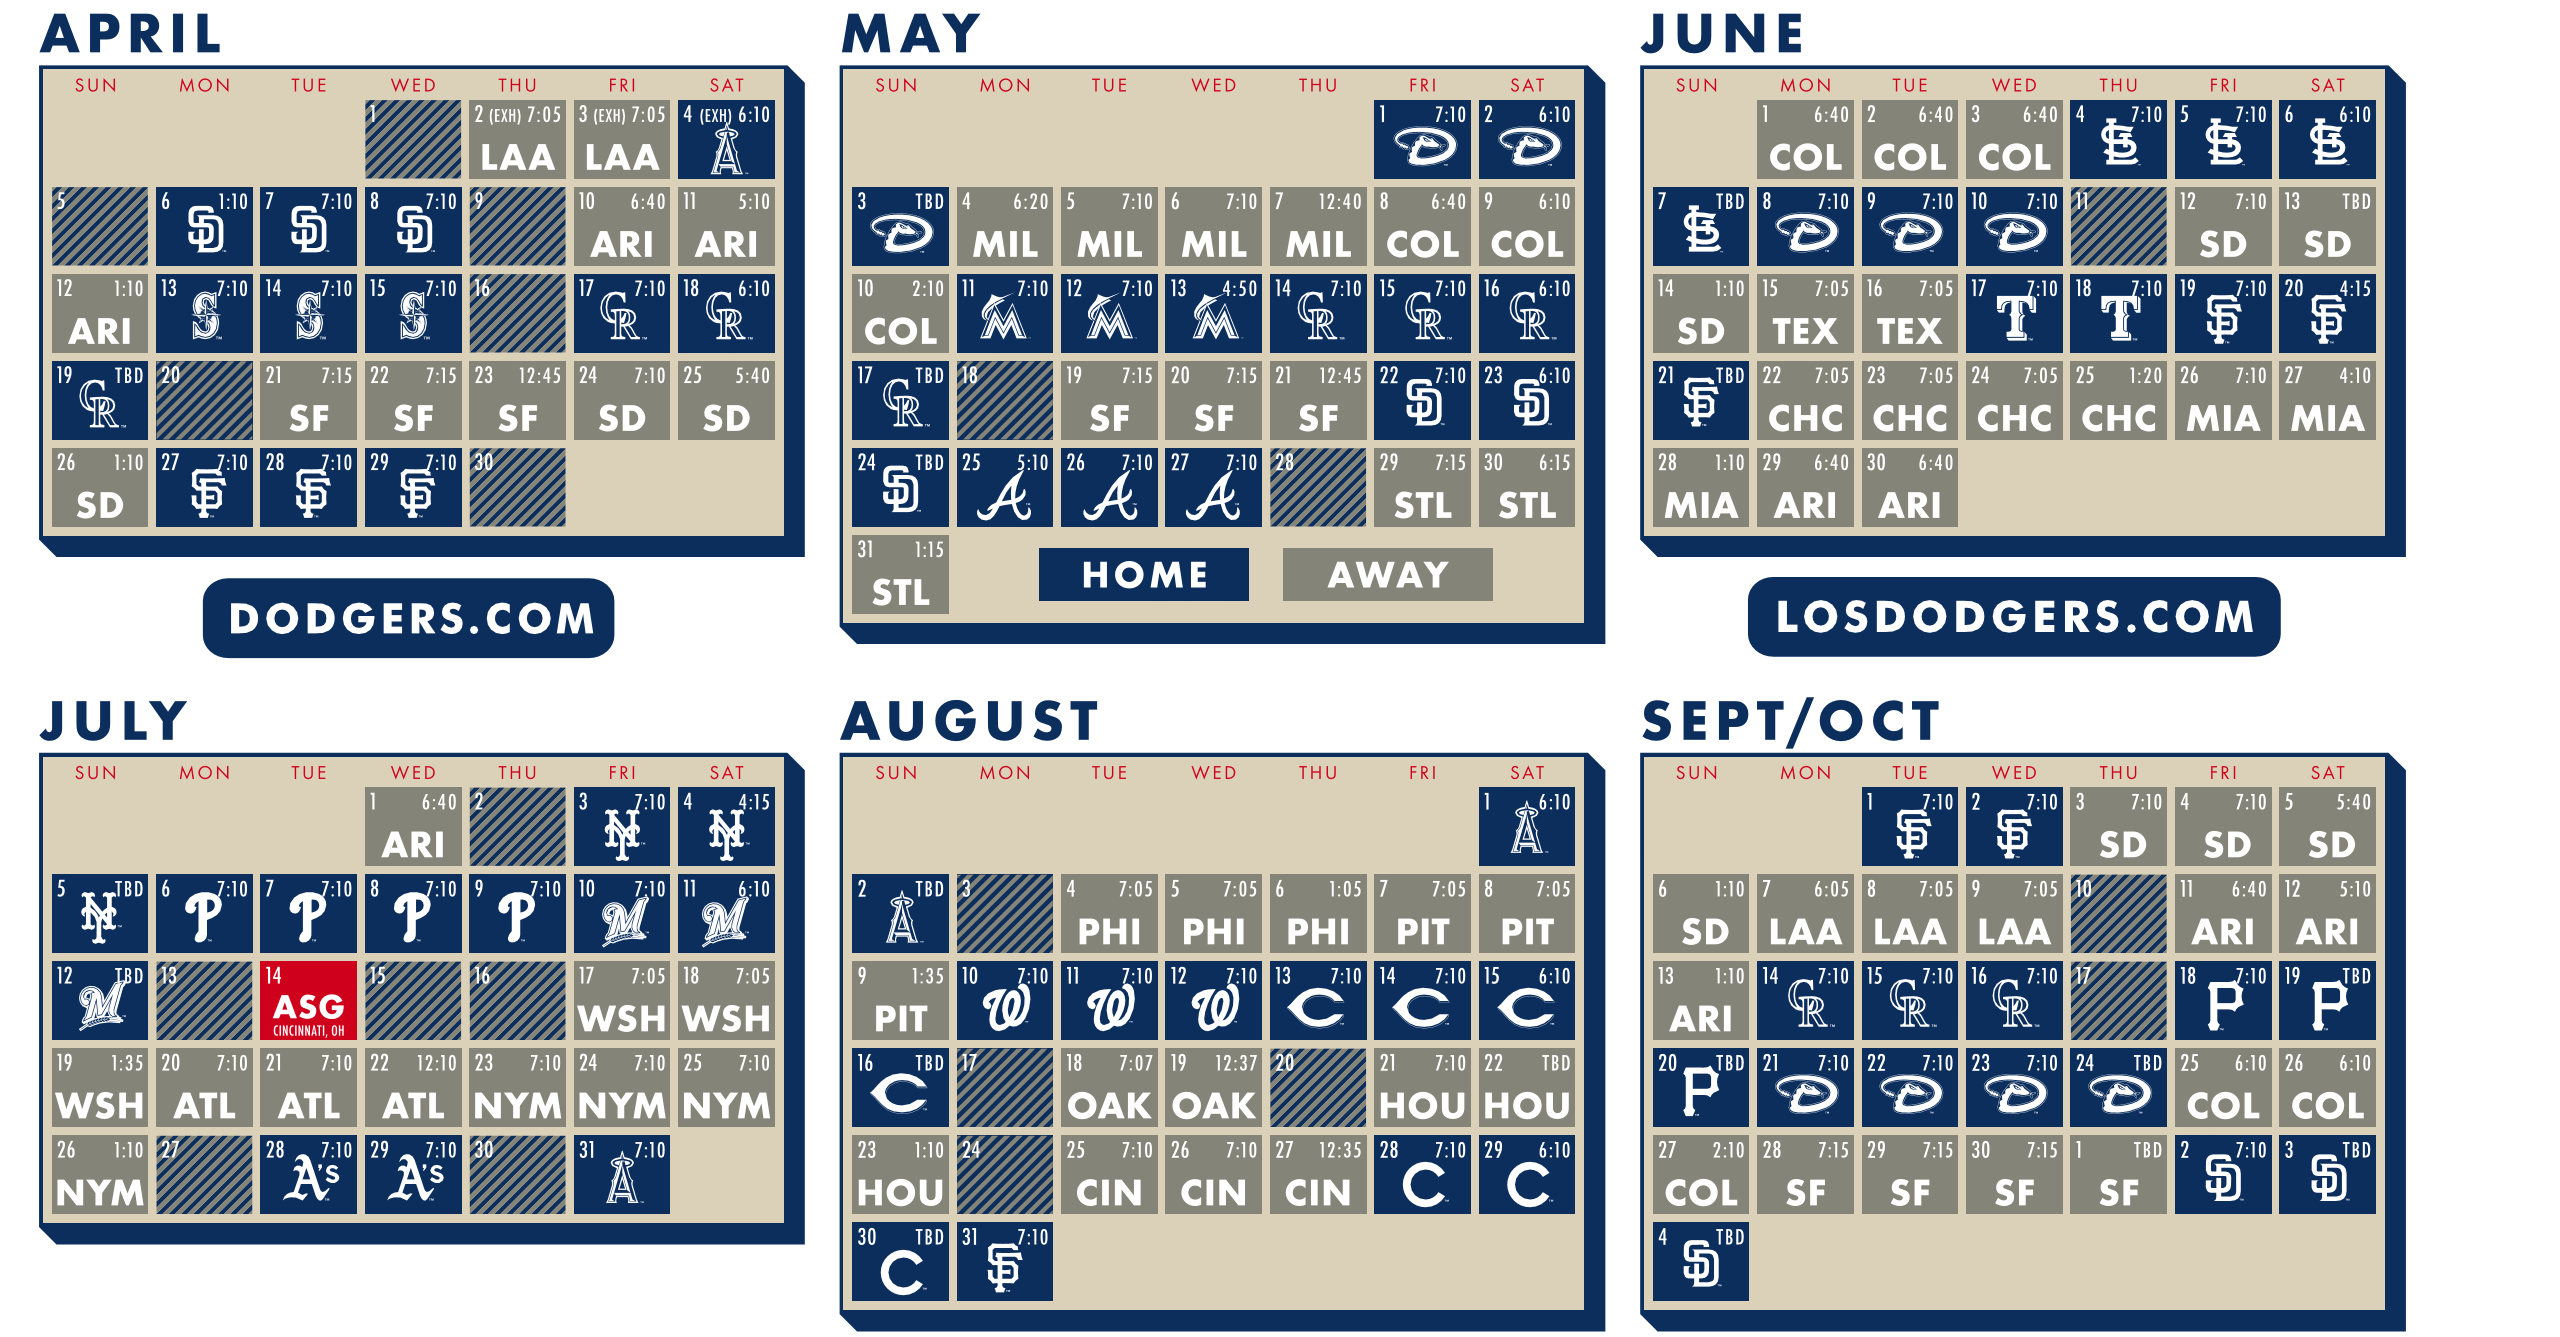 calendar | outside the dodgers